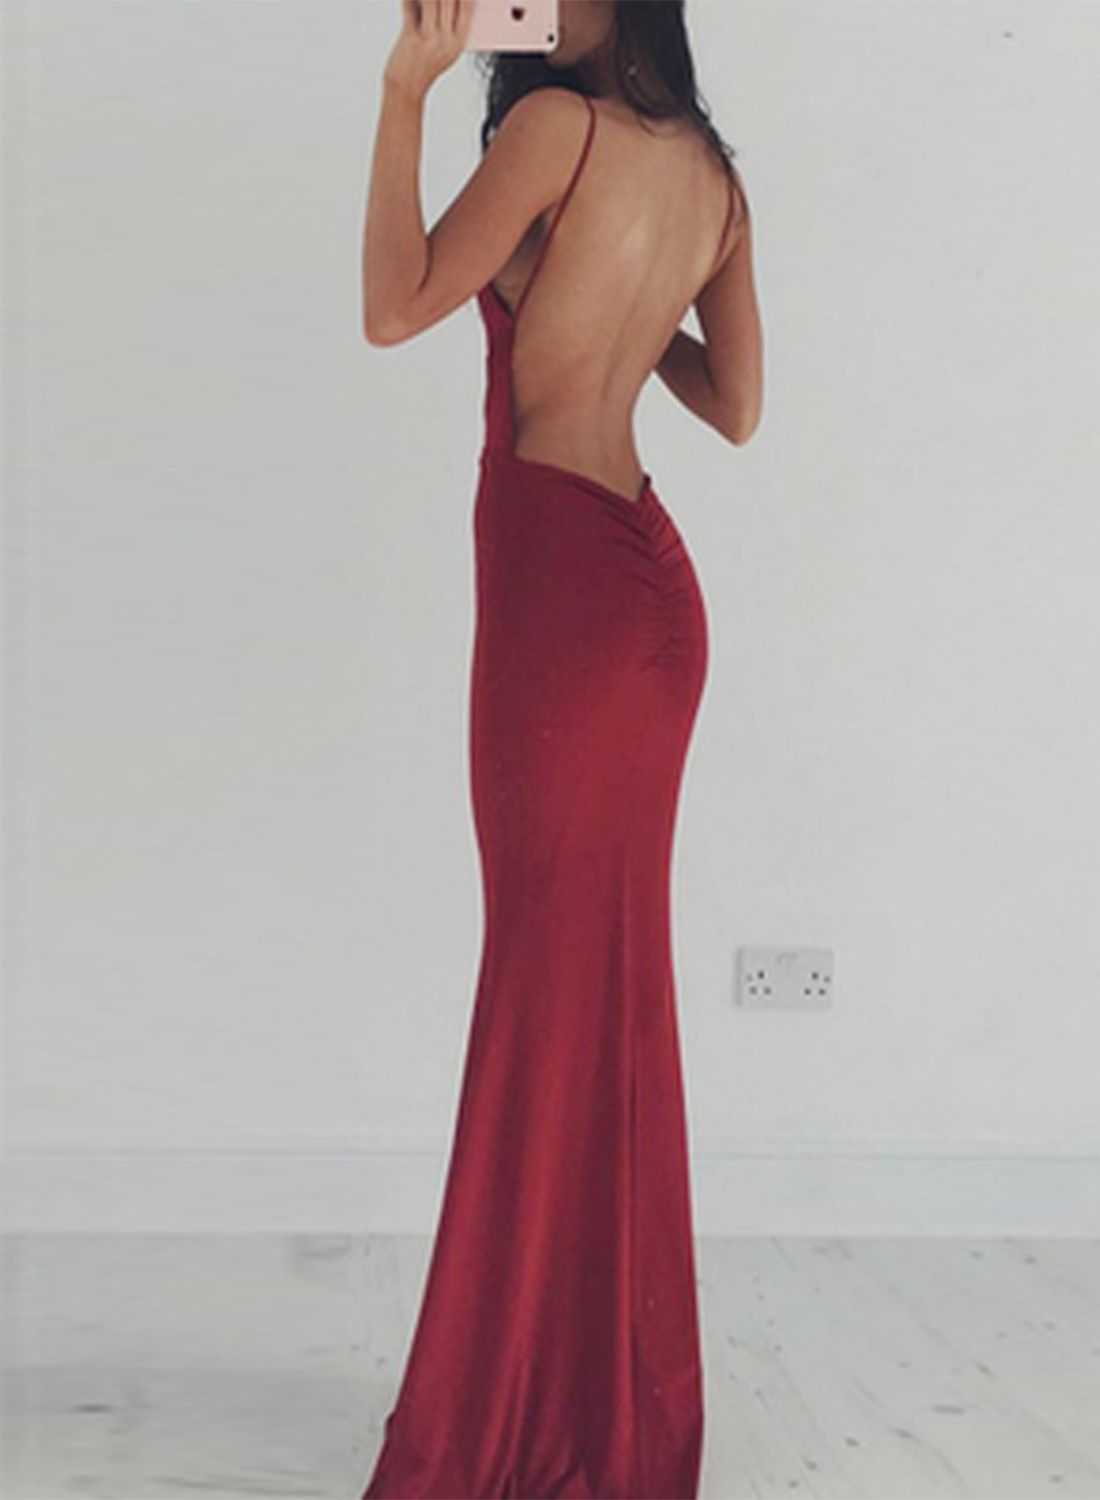 Elegant prom dressesmermaid red long backless prom dress h from